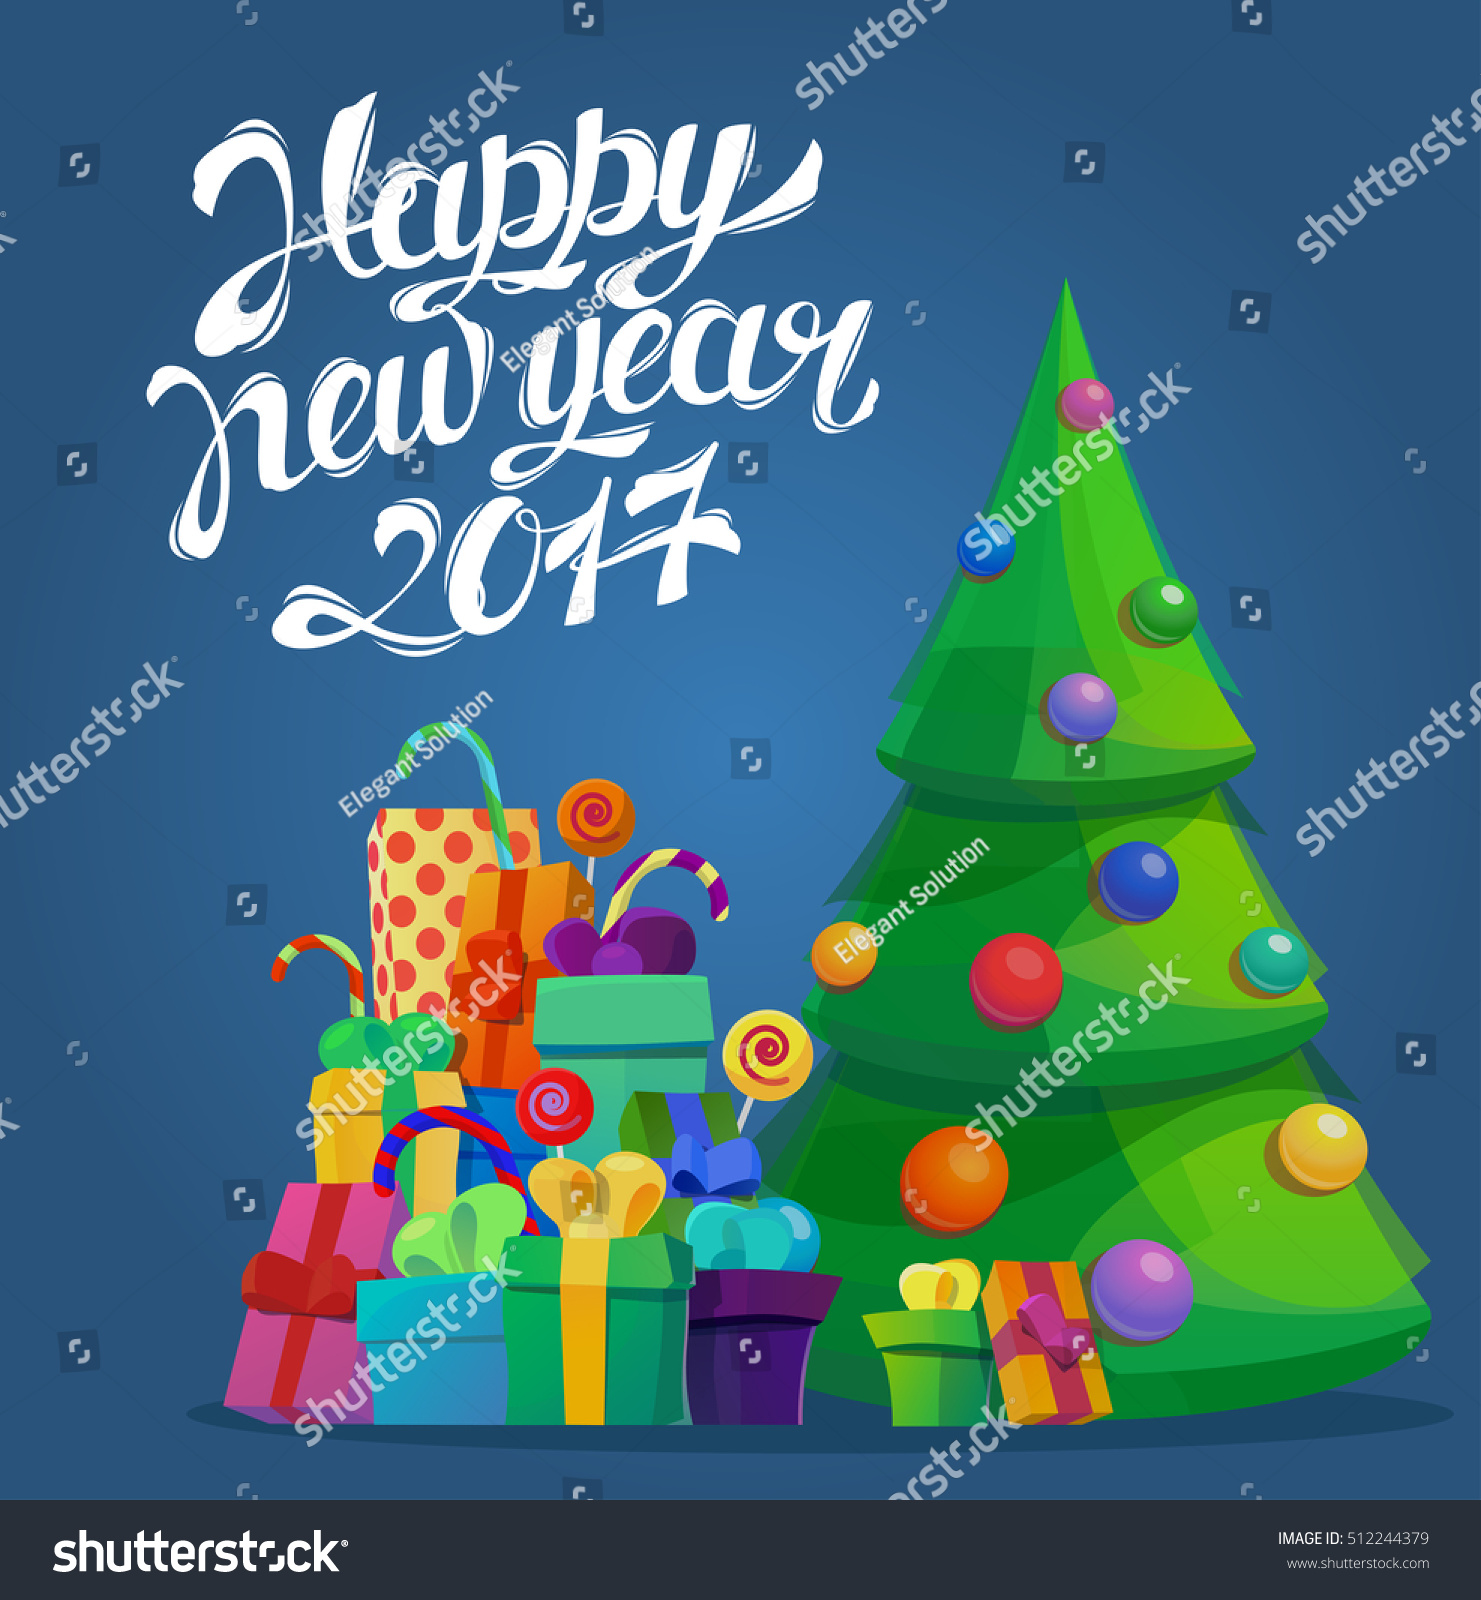 Fir tree new 2017 year merry stock vector 512244379 shutterstock fir tree for new 2017 year and merry christmas greeting card template with gift or m4hsunfo